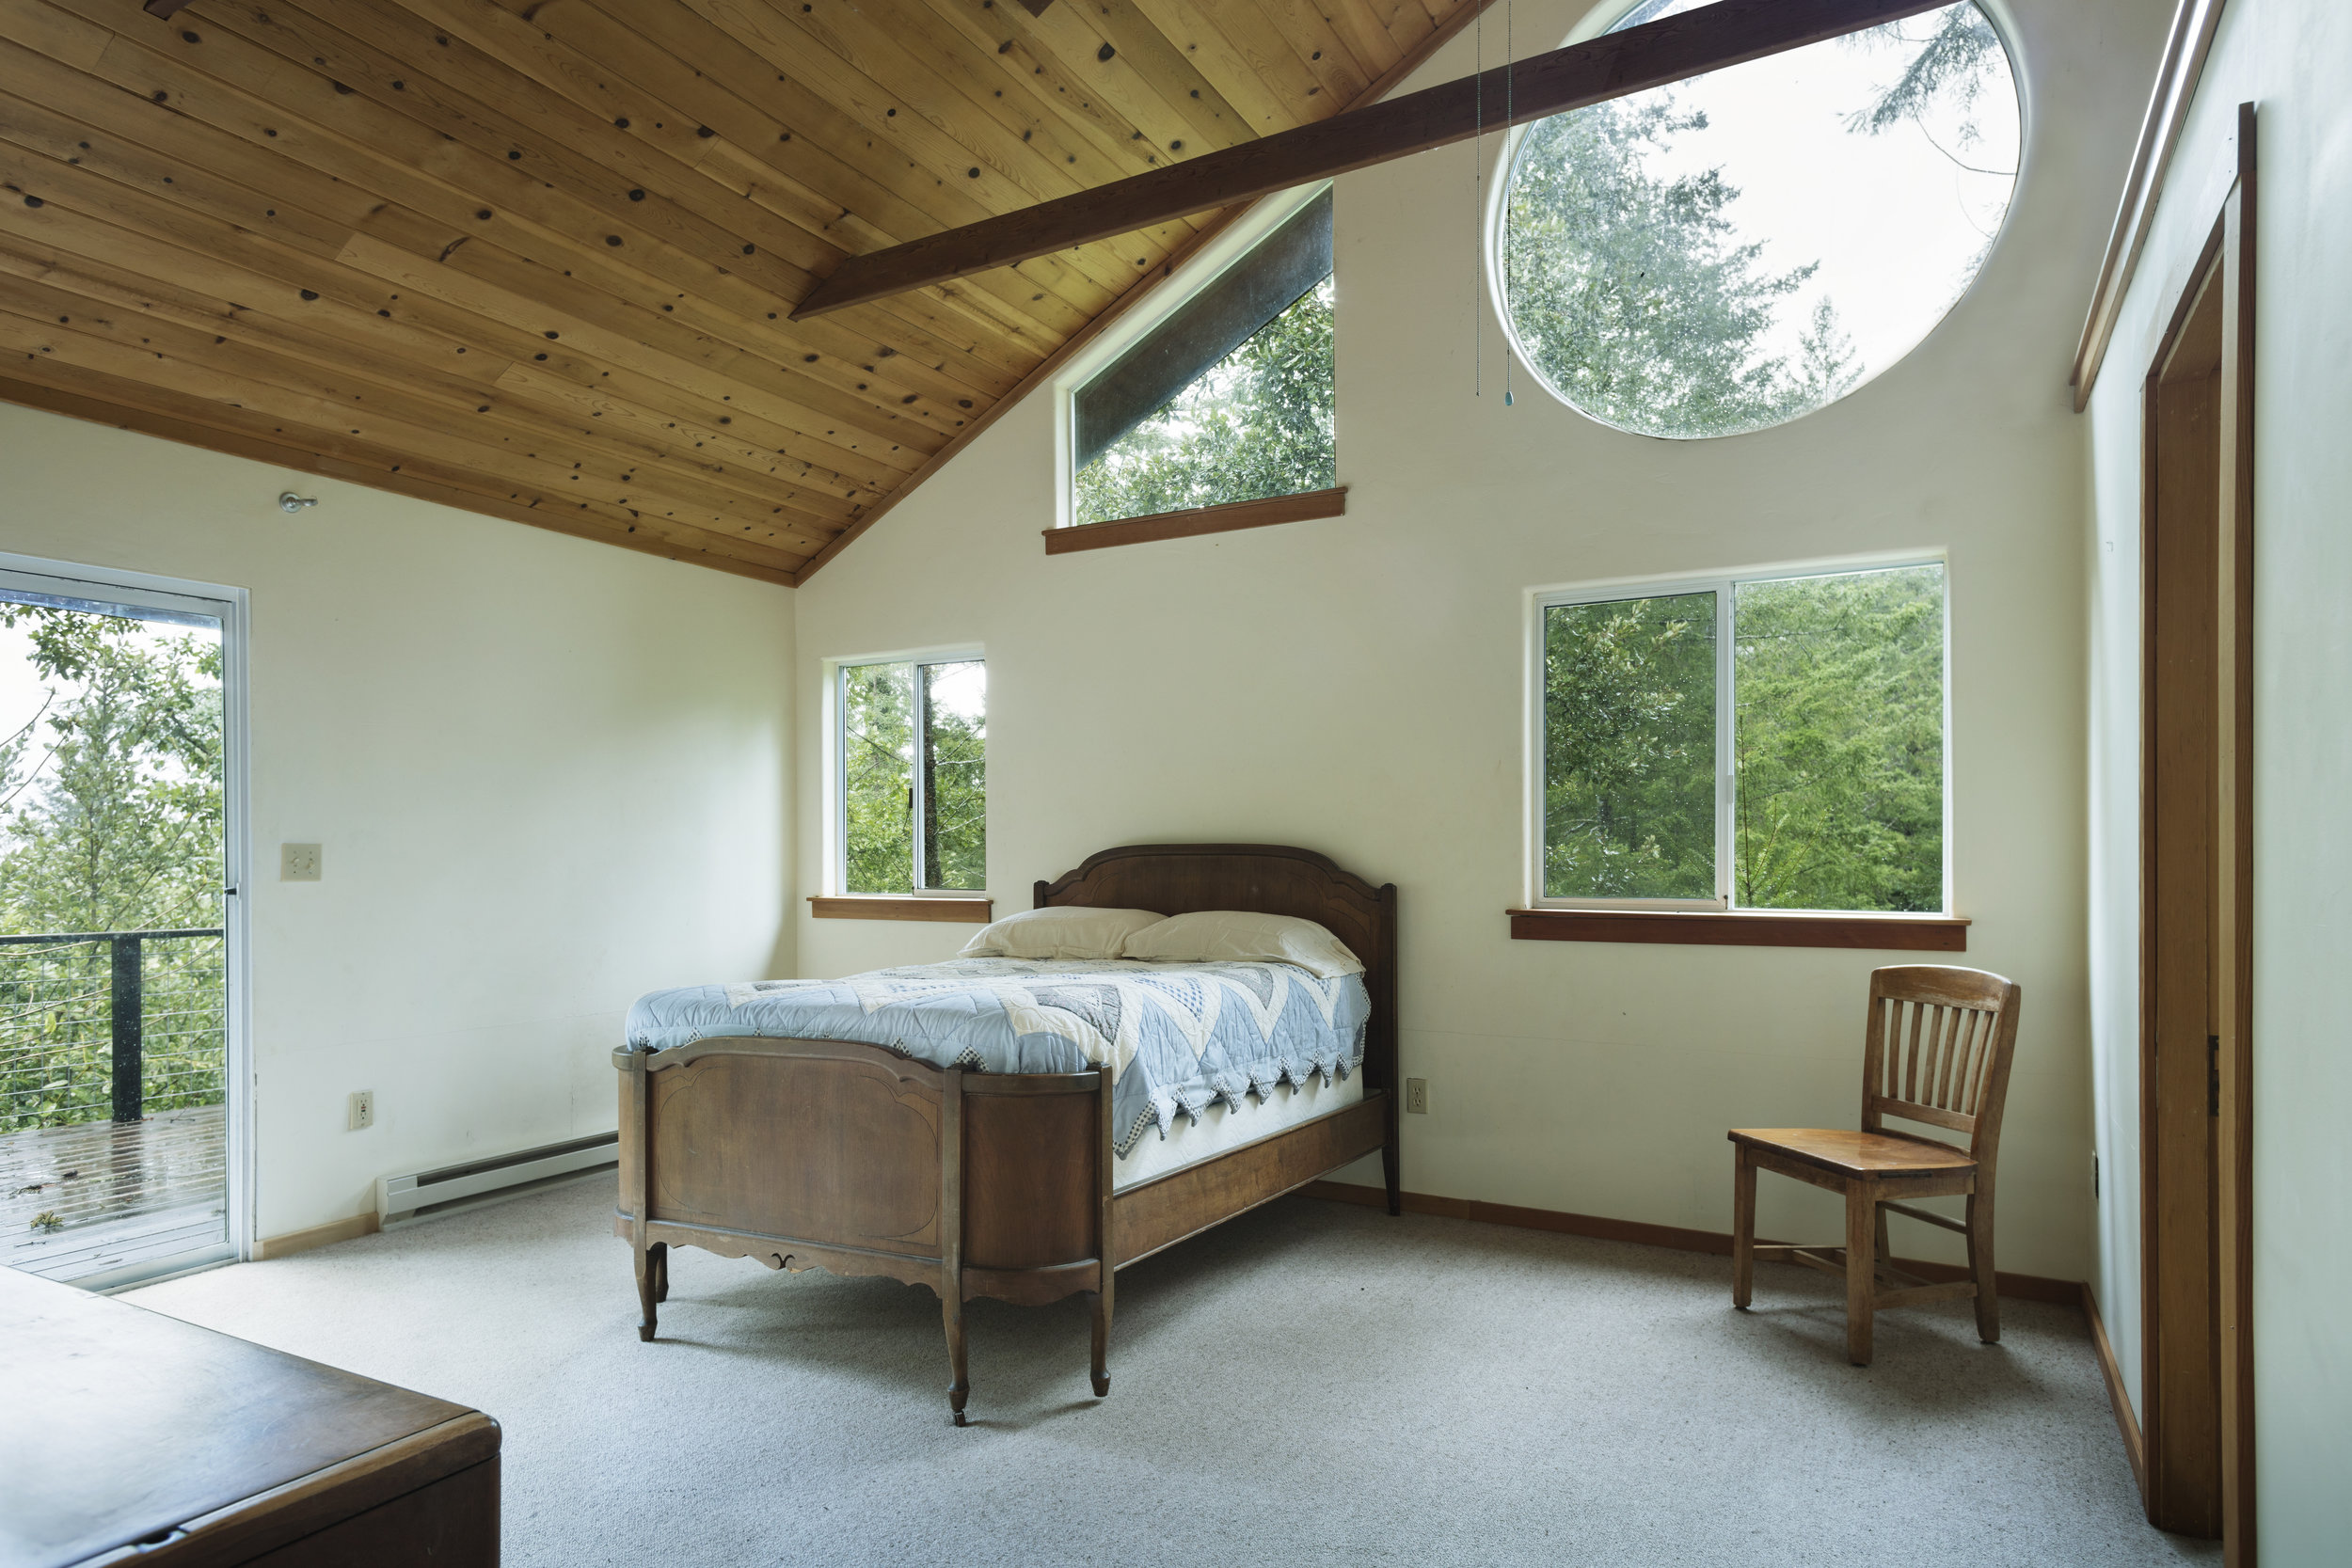 Downstairs master bedroom in a home for sale in Philo, CA